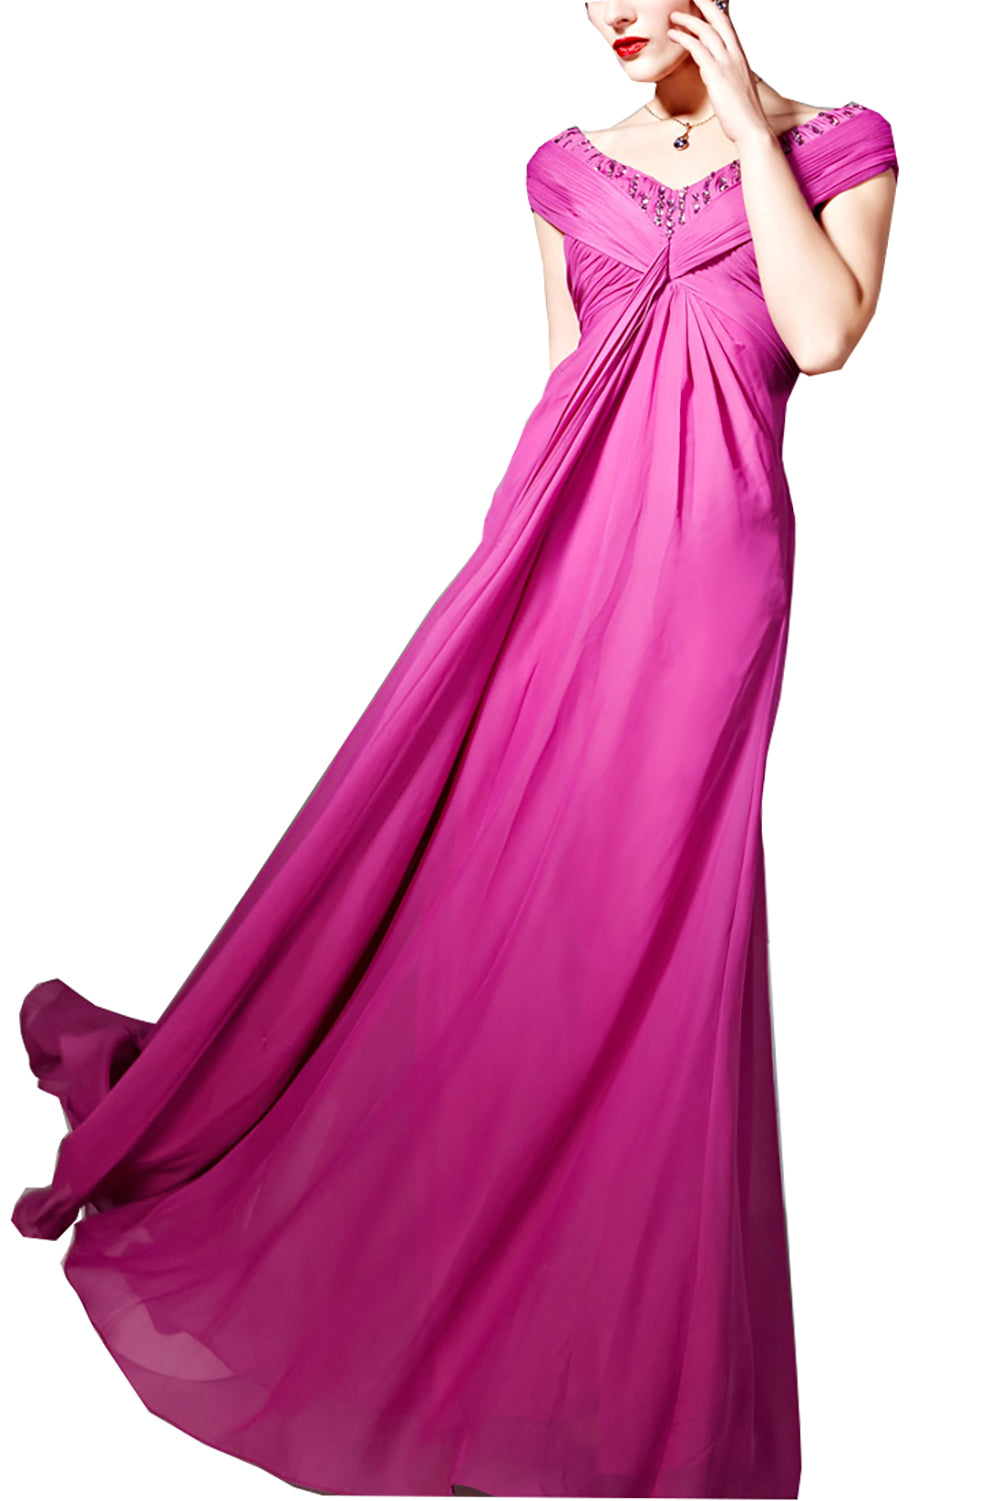 Magenta Ruched Evening Dress with Beaded Bodice (56808)